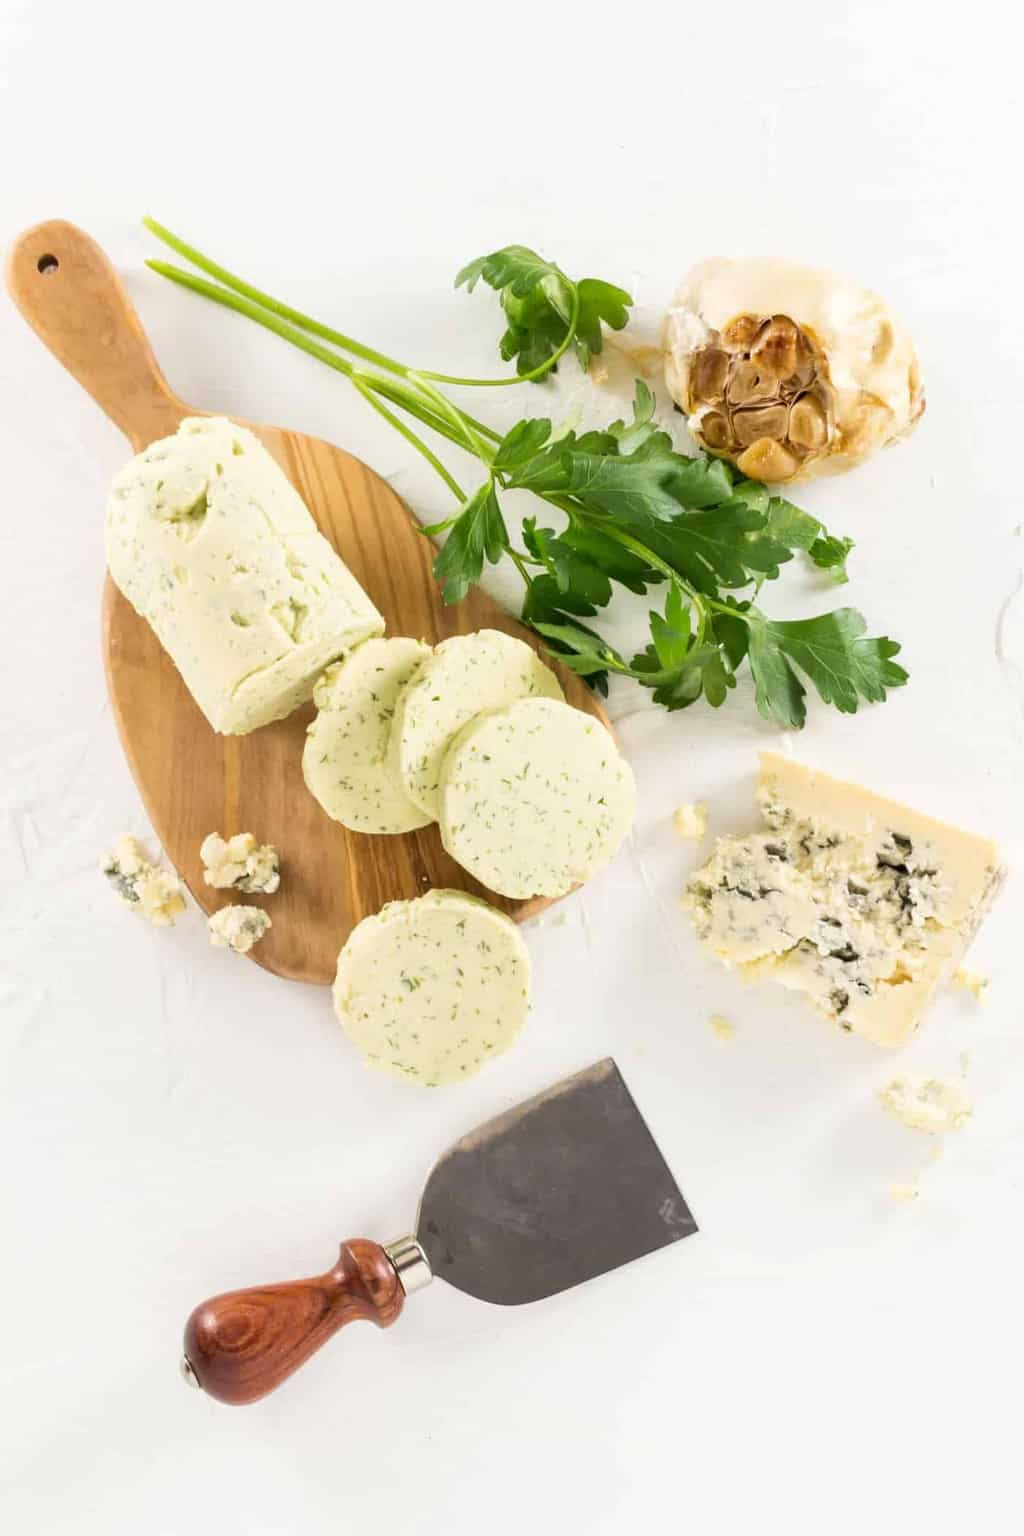 We love this Cashel Blue Cheese Butter on just about everything from bread to pasta to steak!